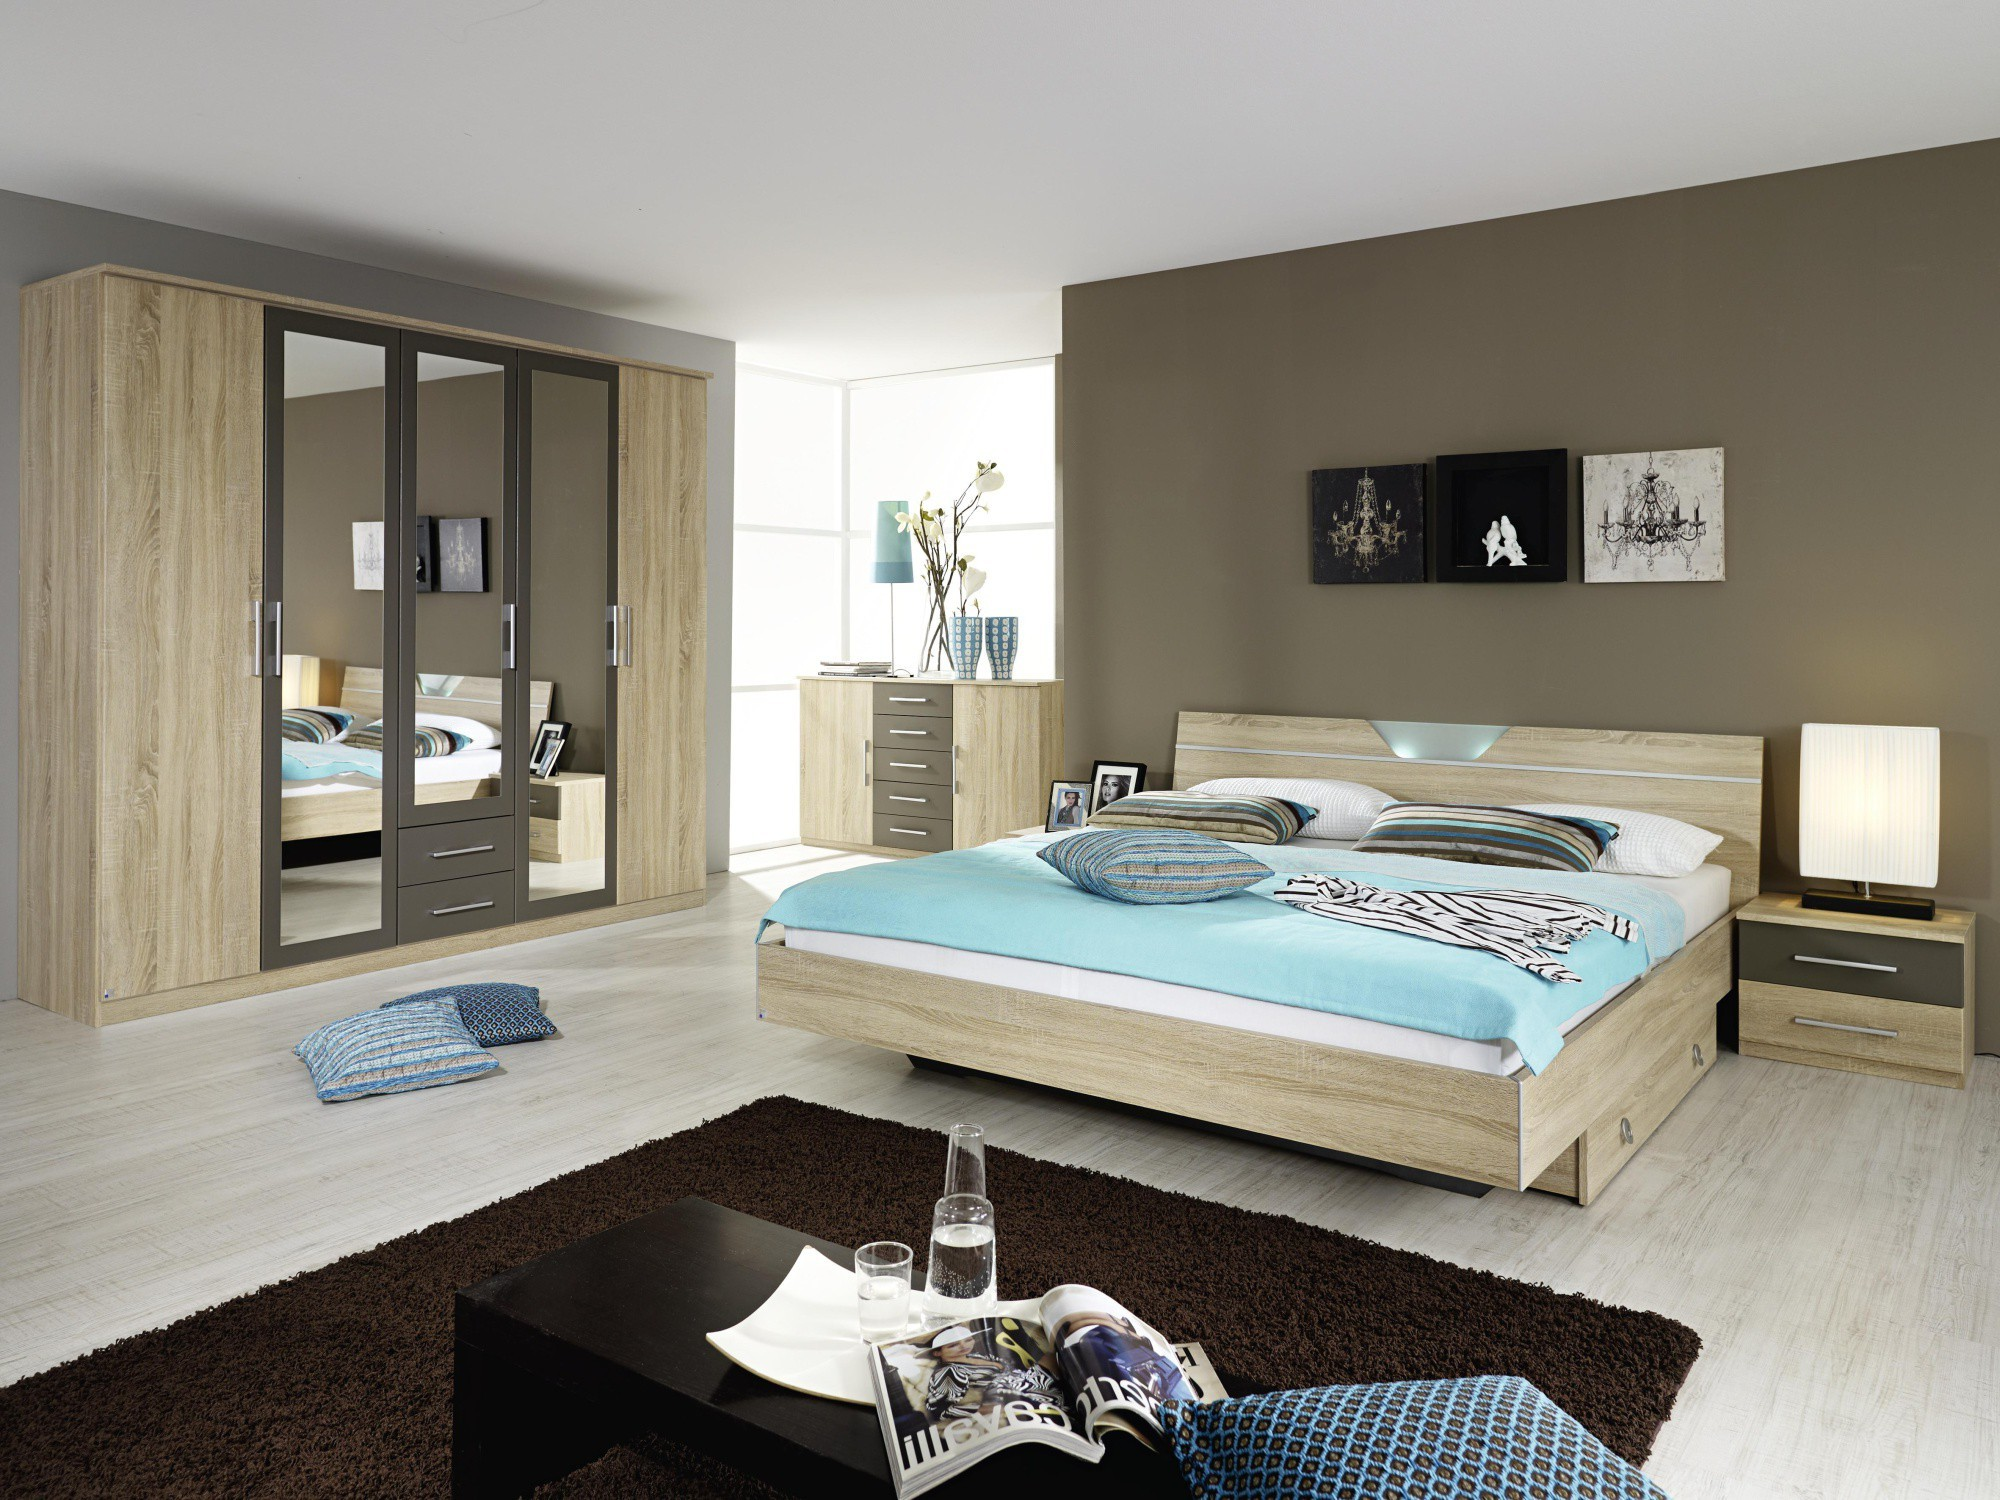 D coration chambre coucher adulte contemporaine chambre for Decoration de chambre a coucher adulte